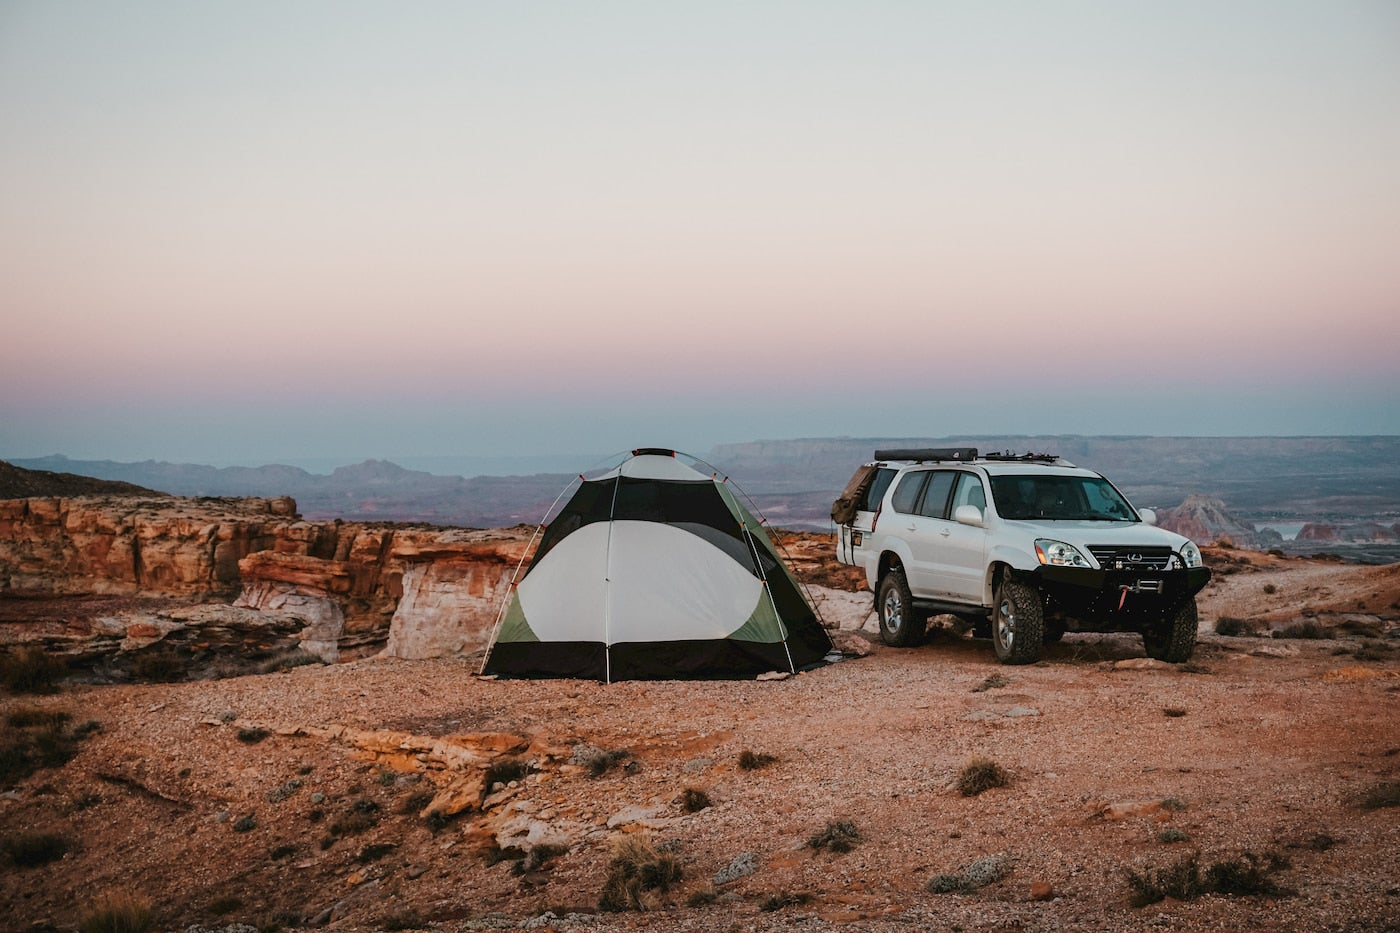 Tent pitched next to car parked in desert backcountry.